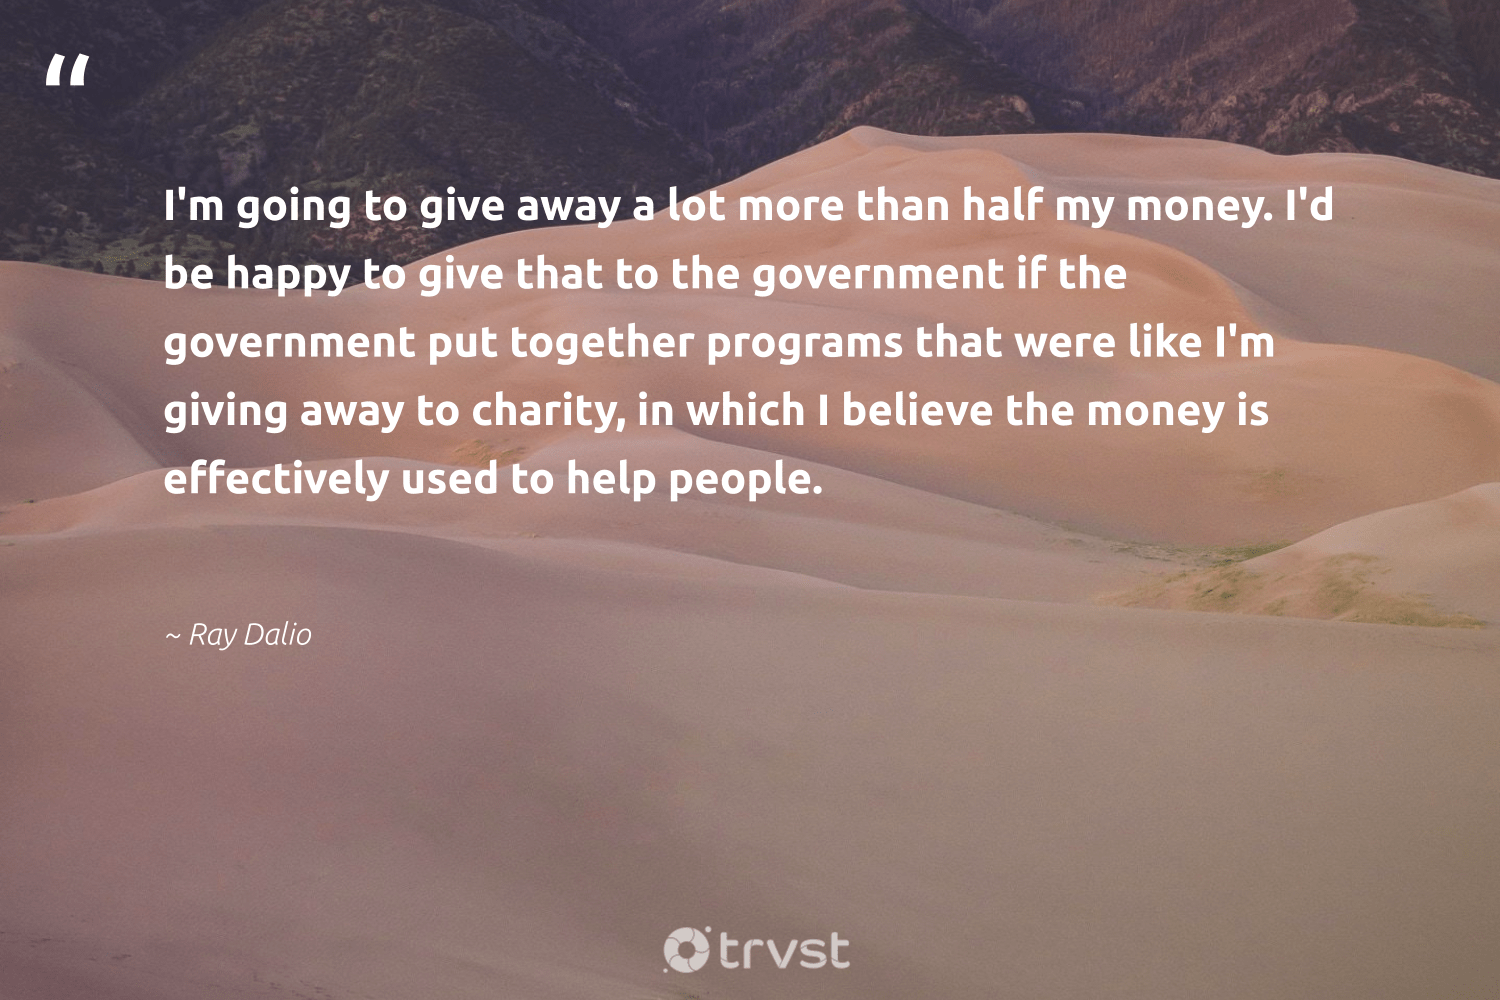 """""""I'm going to give away a lot more than half my money. I'd be happy to give that to the government if the government put together programs that were like I'm giving away to charity, in which I believe the money is effectively used to help people.""""  - Ray Dalio #trvst #quotes #happy #dogood #collectiveaction #equalopportunity #bethechange #communities #gogreen #strongercommunities #beinspired #betterplanet"""